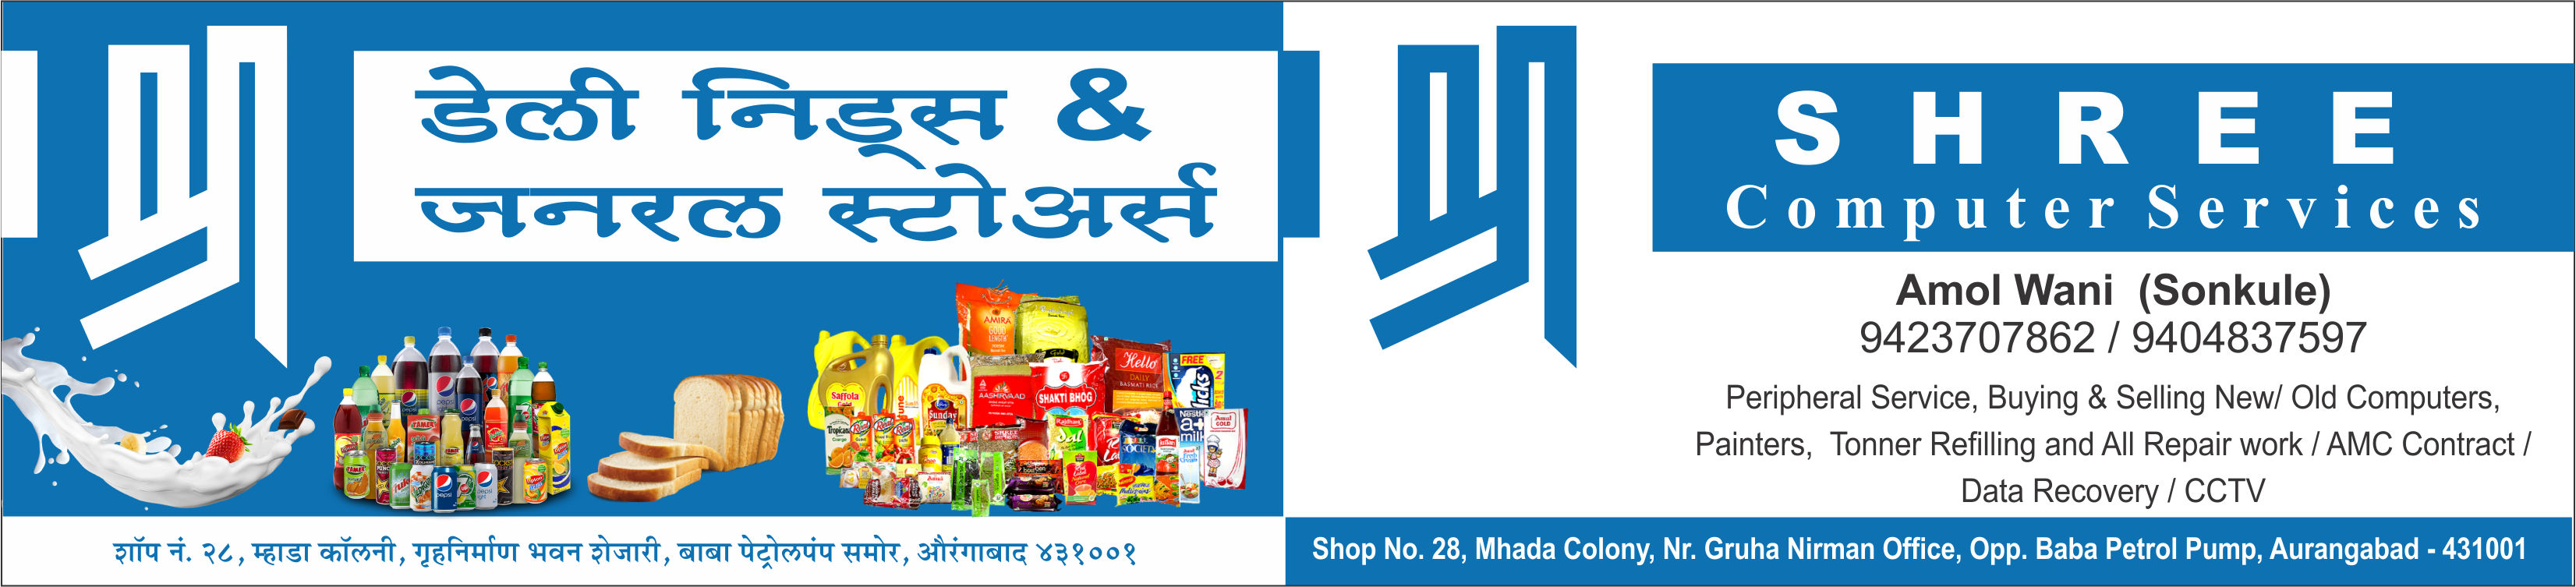 Shree Daily Needs & General Stores